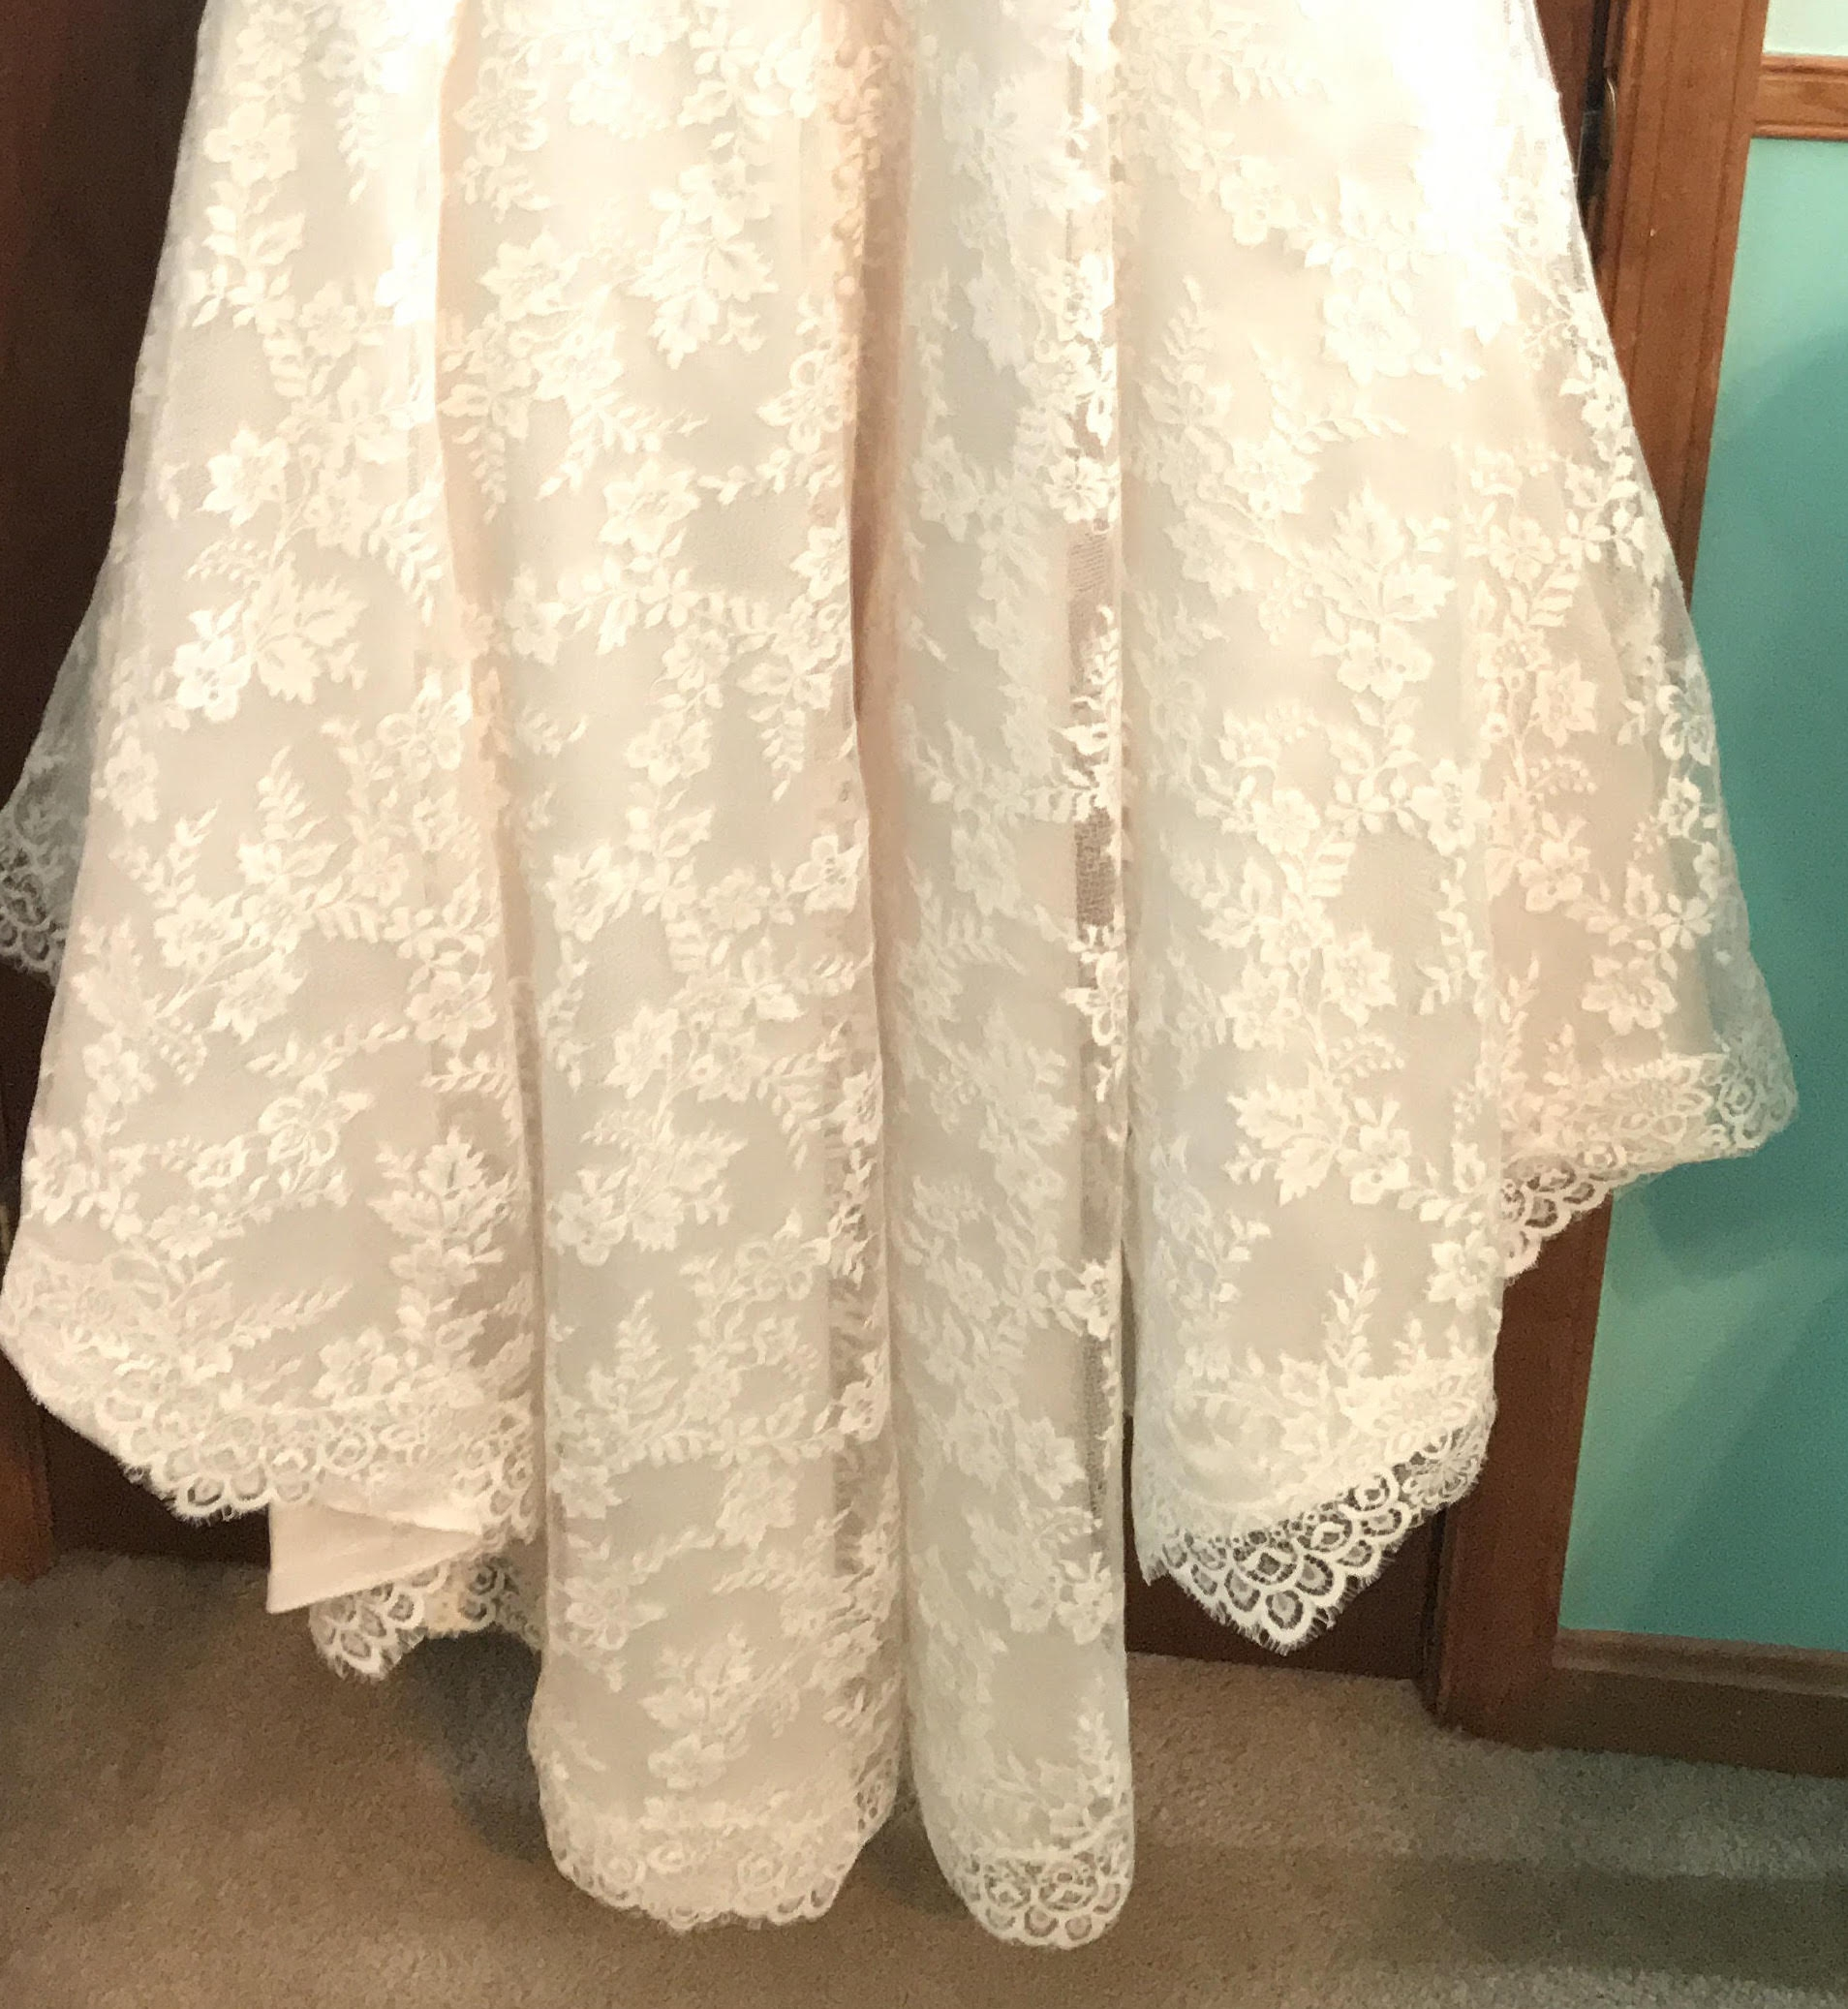 Beloved By Casablanca Ivory/Champagne Lace Wedding Dress Size 10 ...